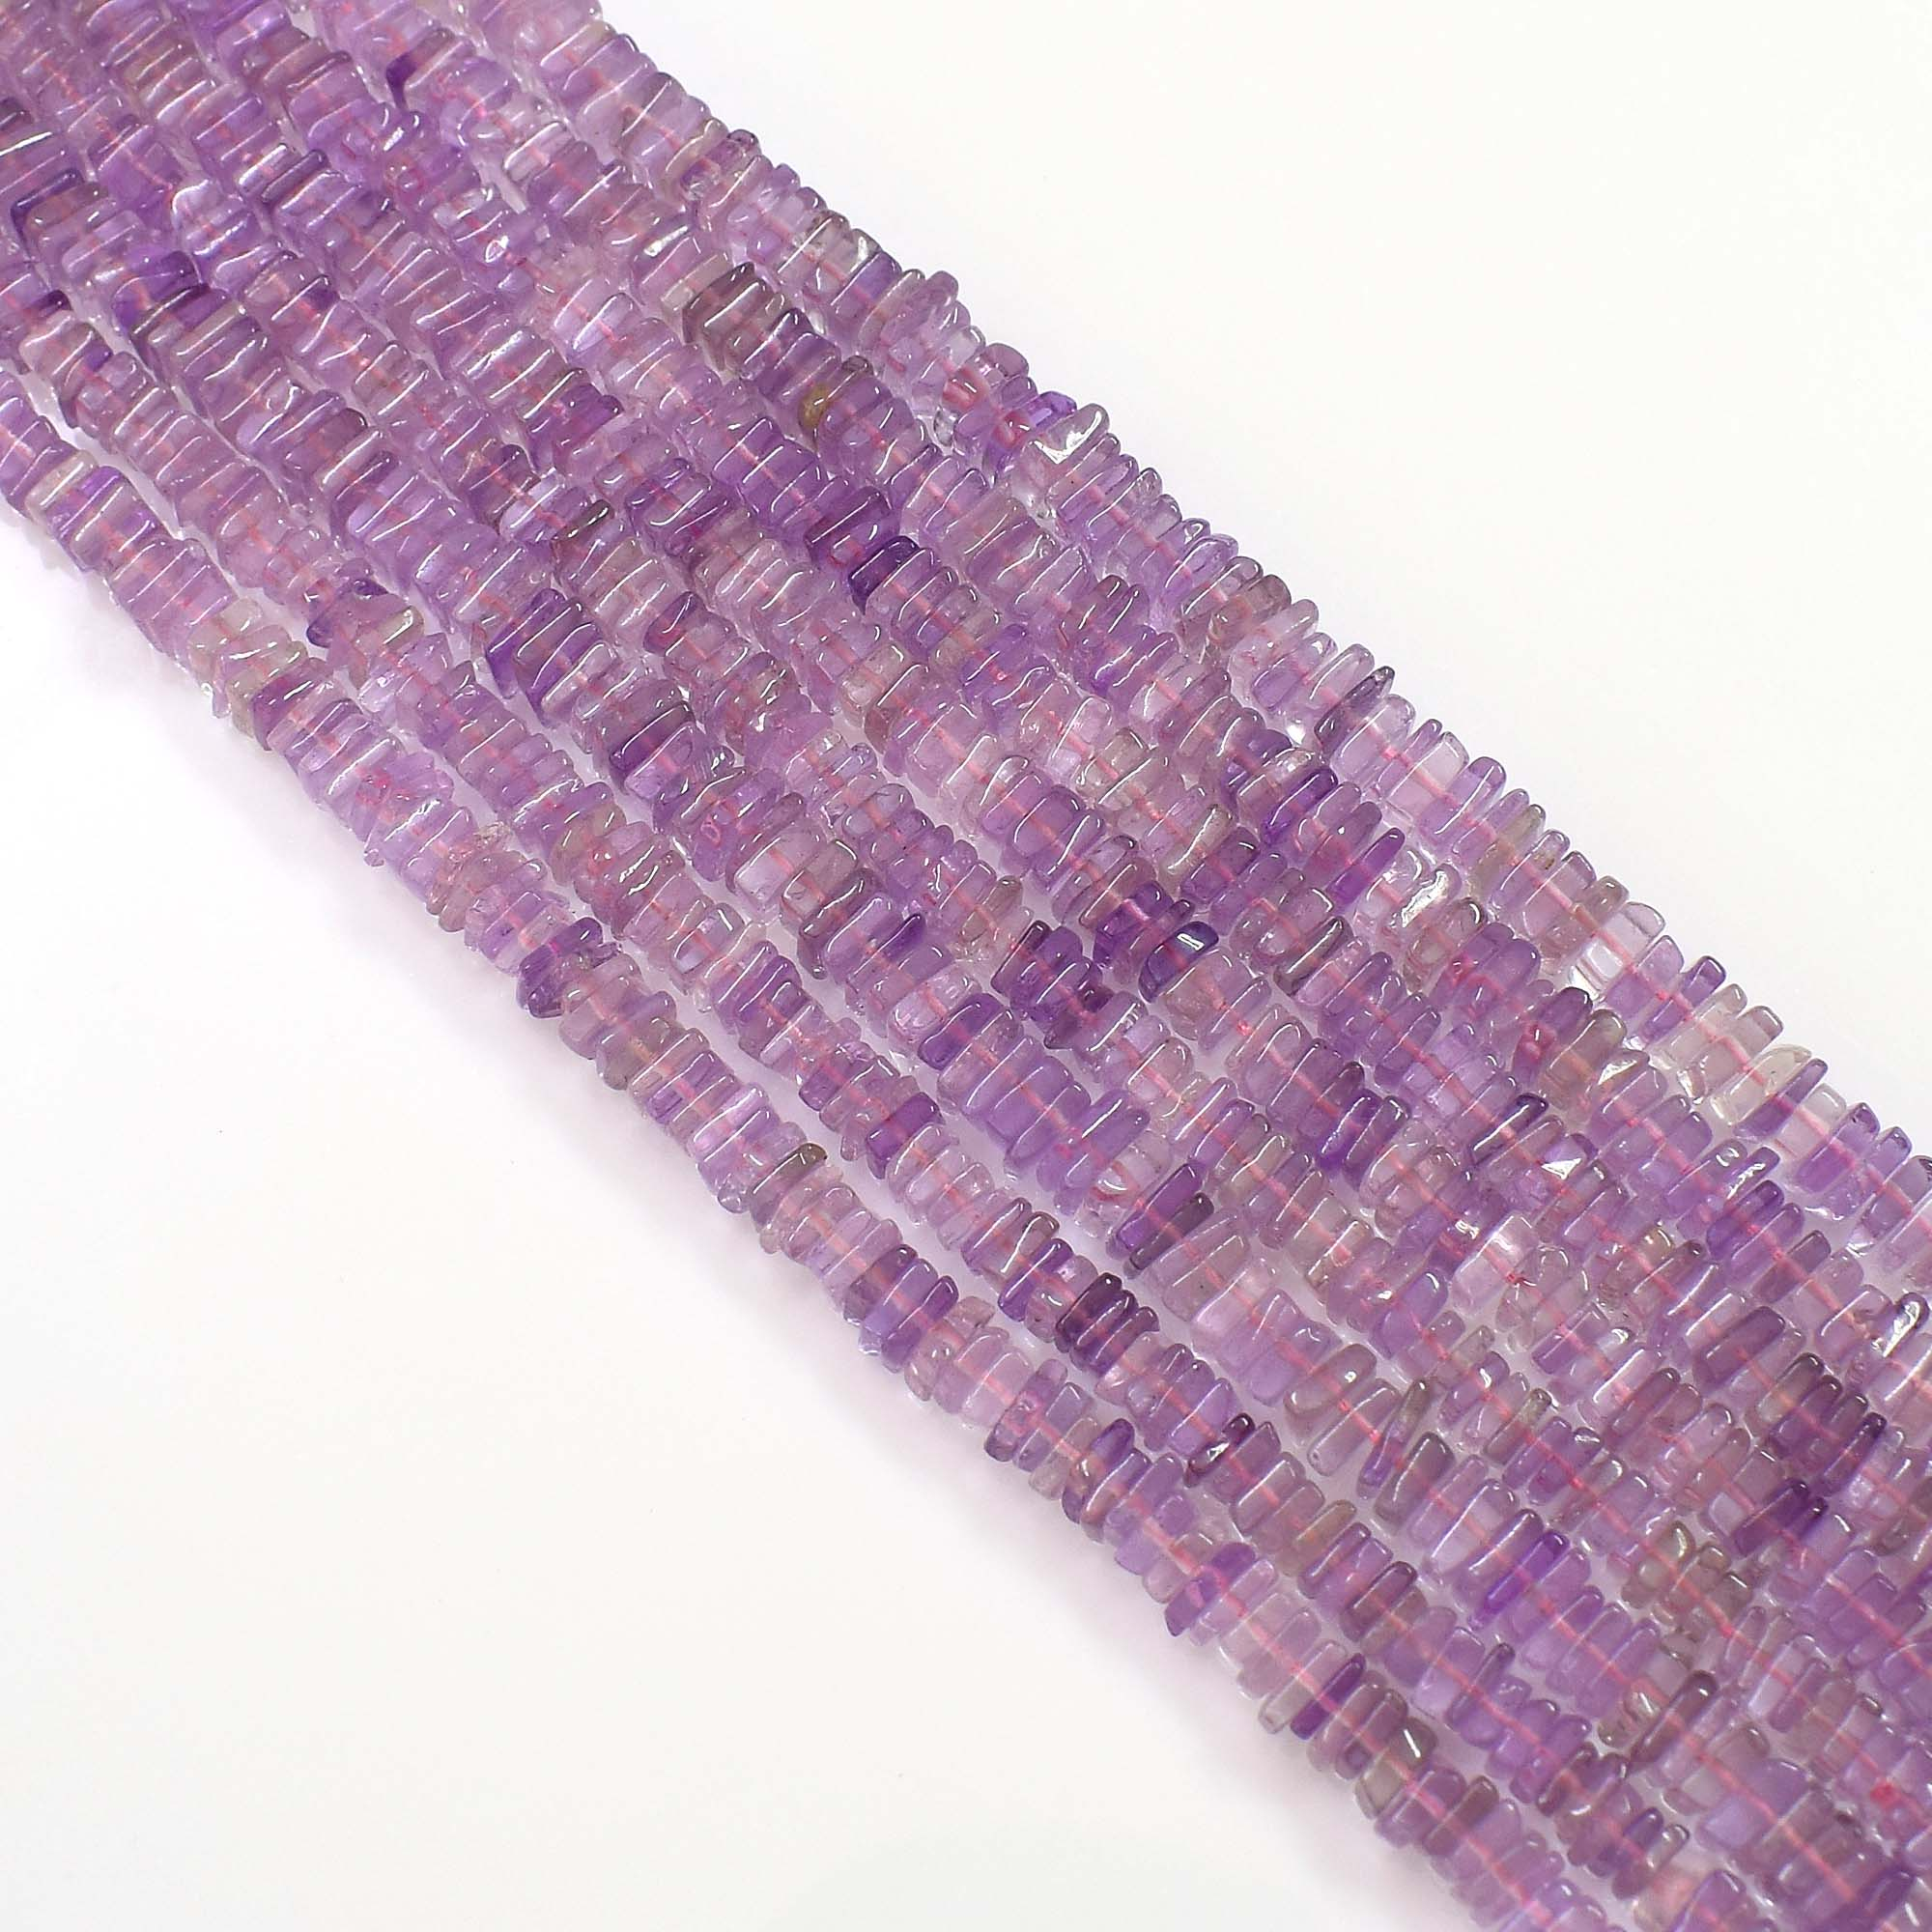 Natural Pink Amethyst Gemstone Beads 6-7mm Heishi Square Shape Beads